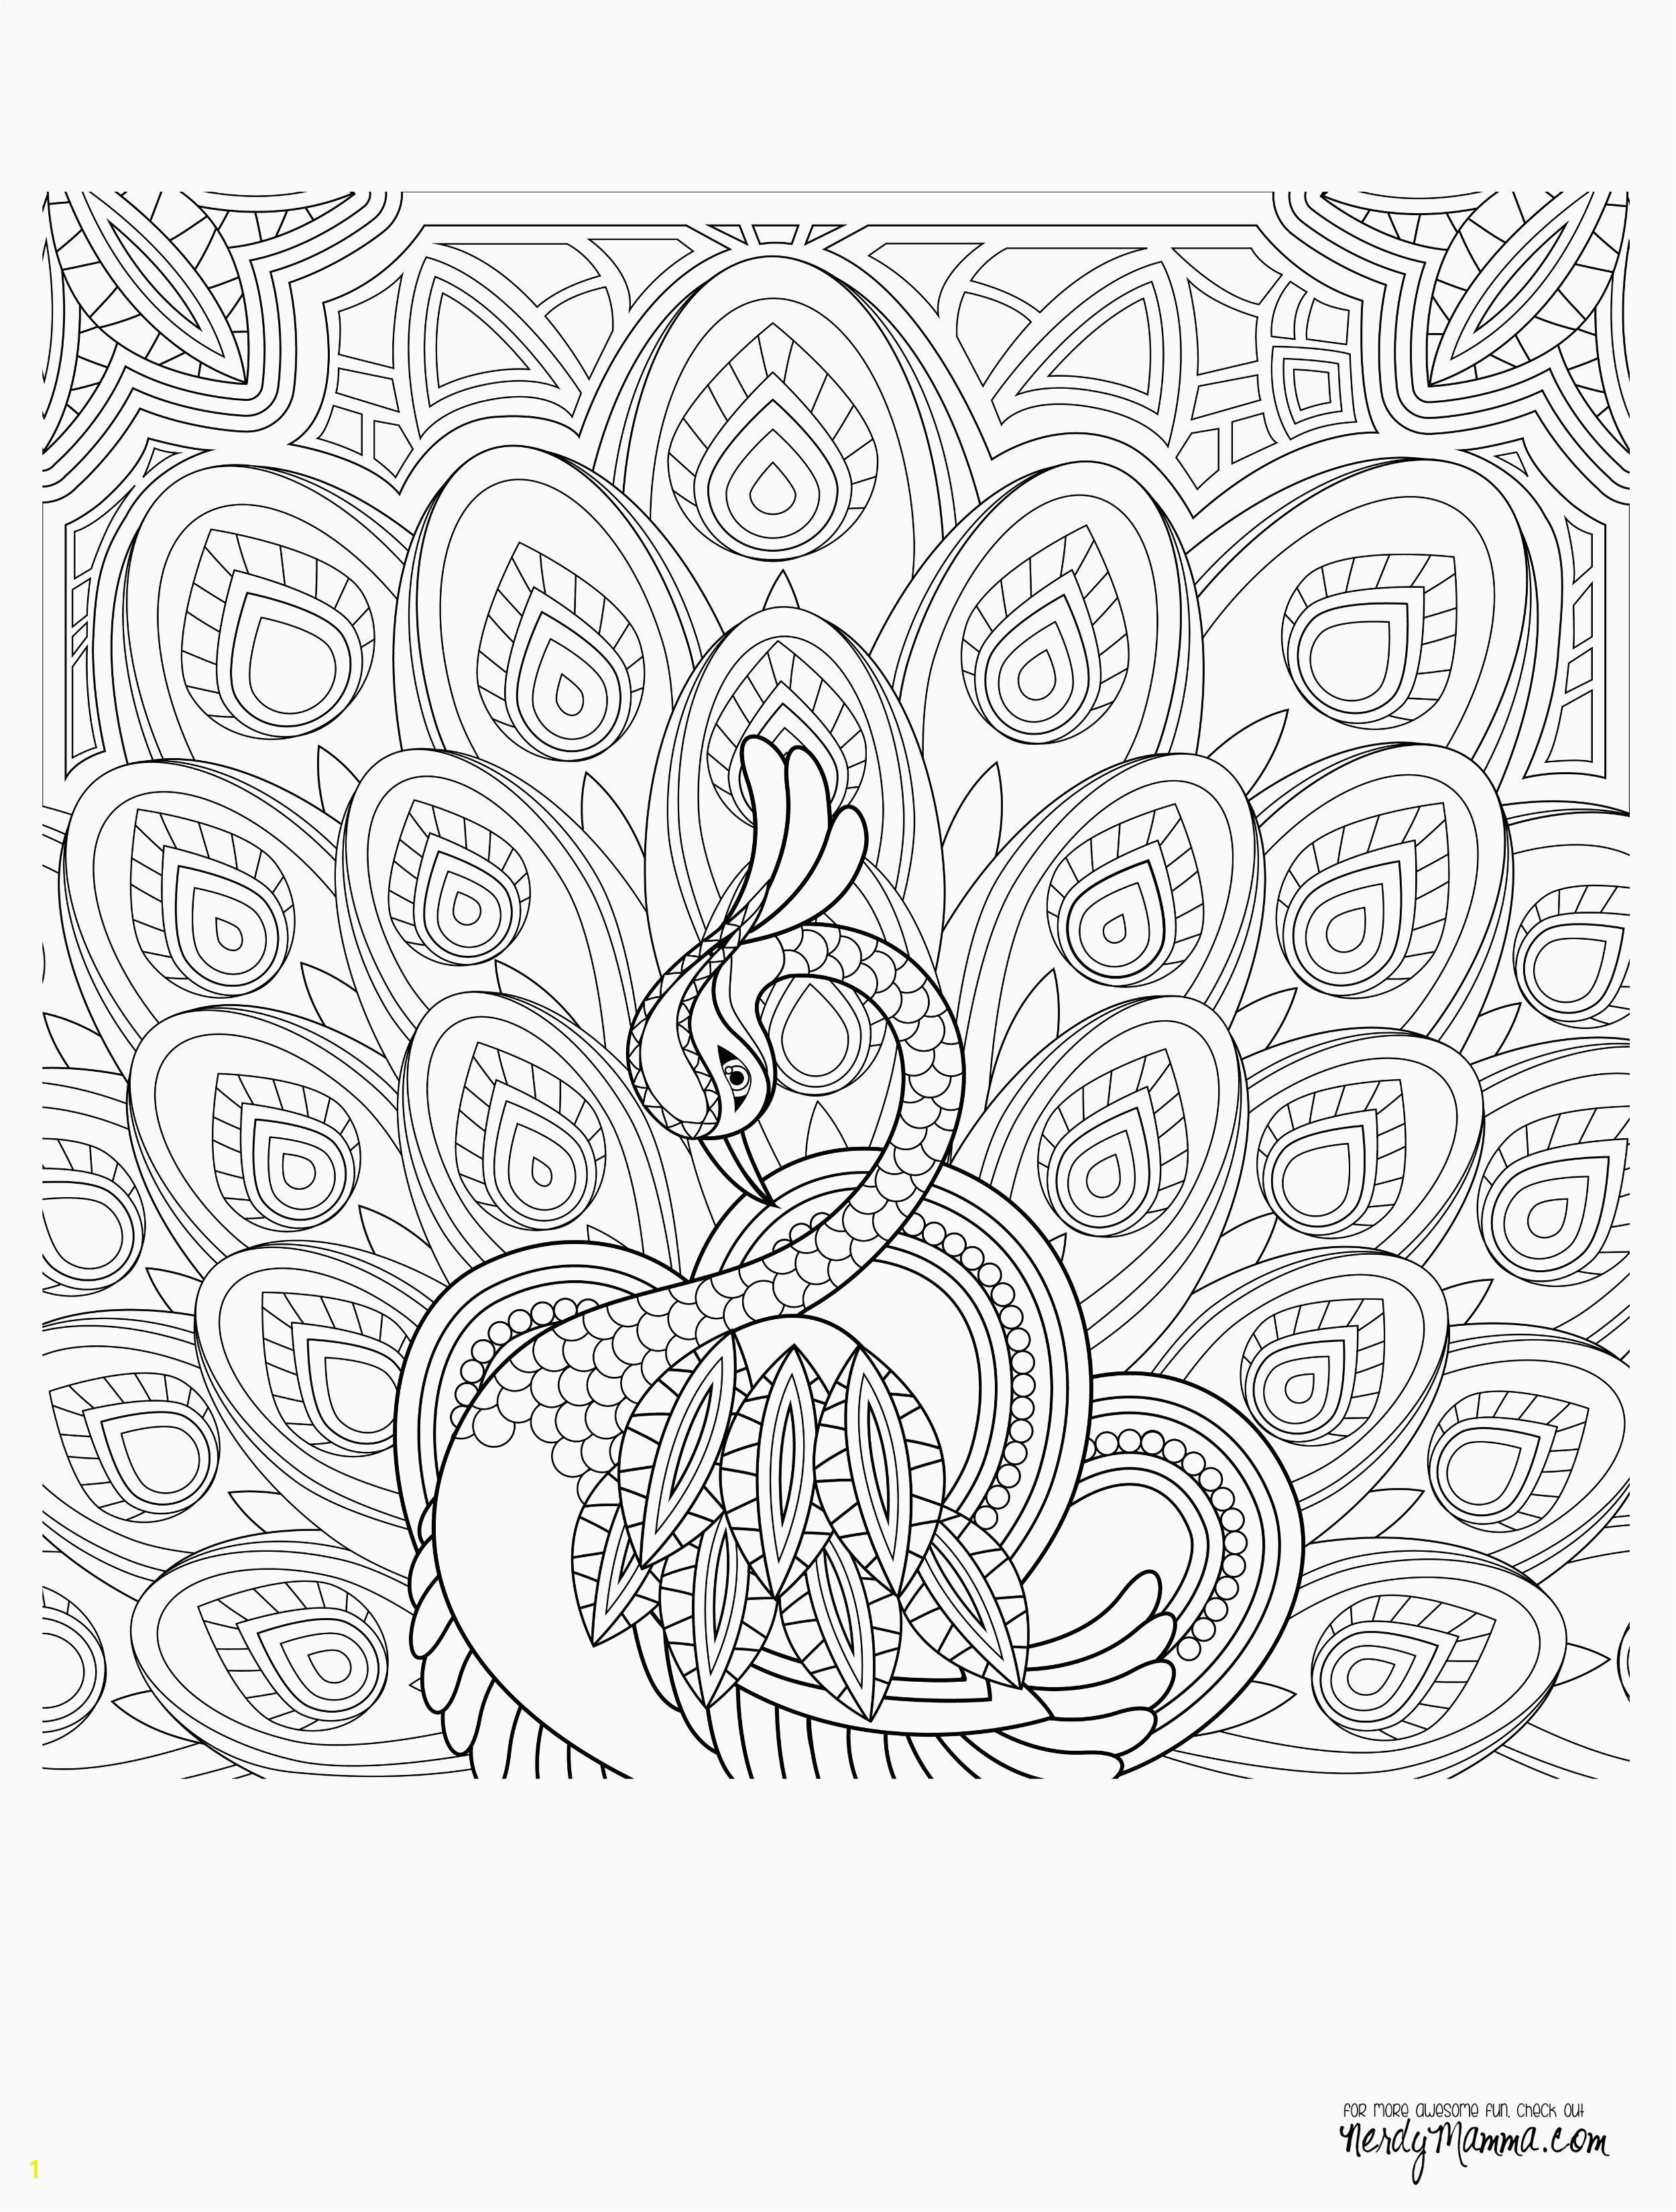 Best Coloring Pages For Adults Simple Adult Coloring Pages Best Best Coloring Page Adult Od Kids